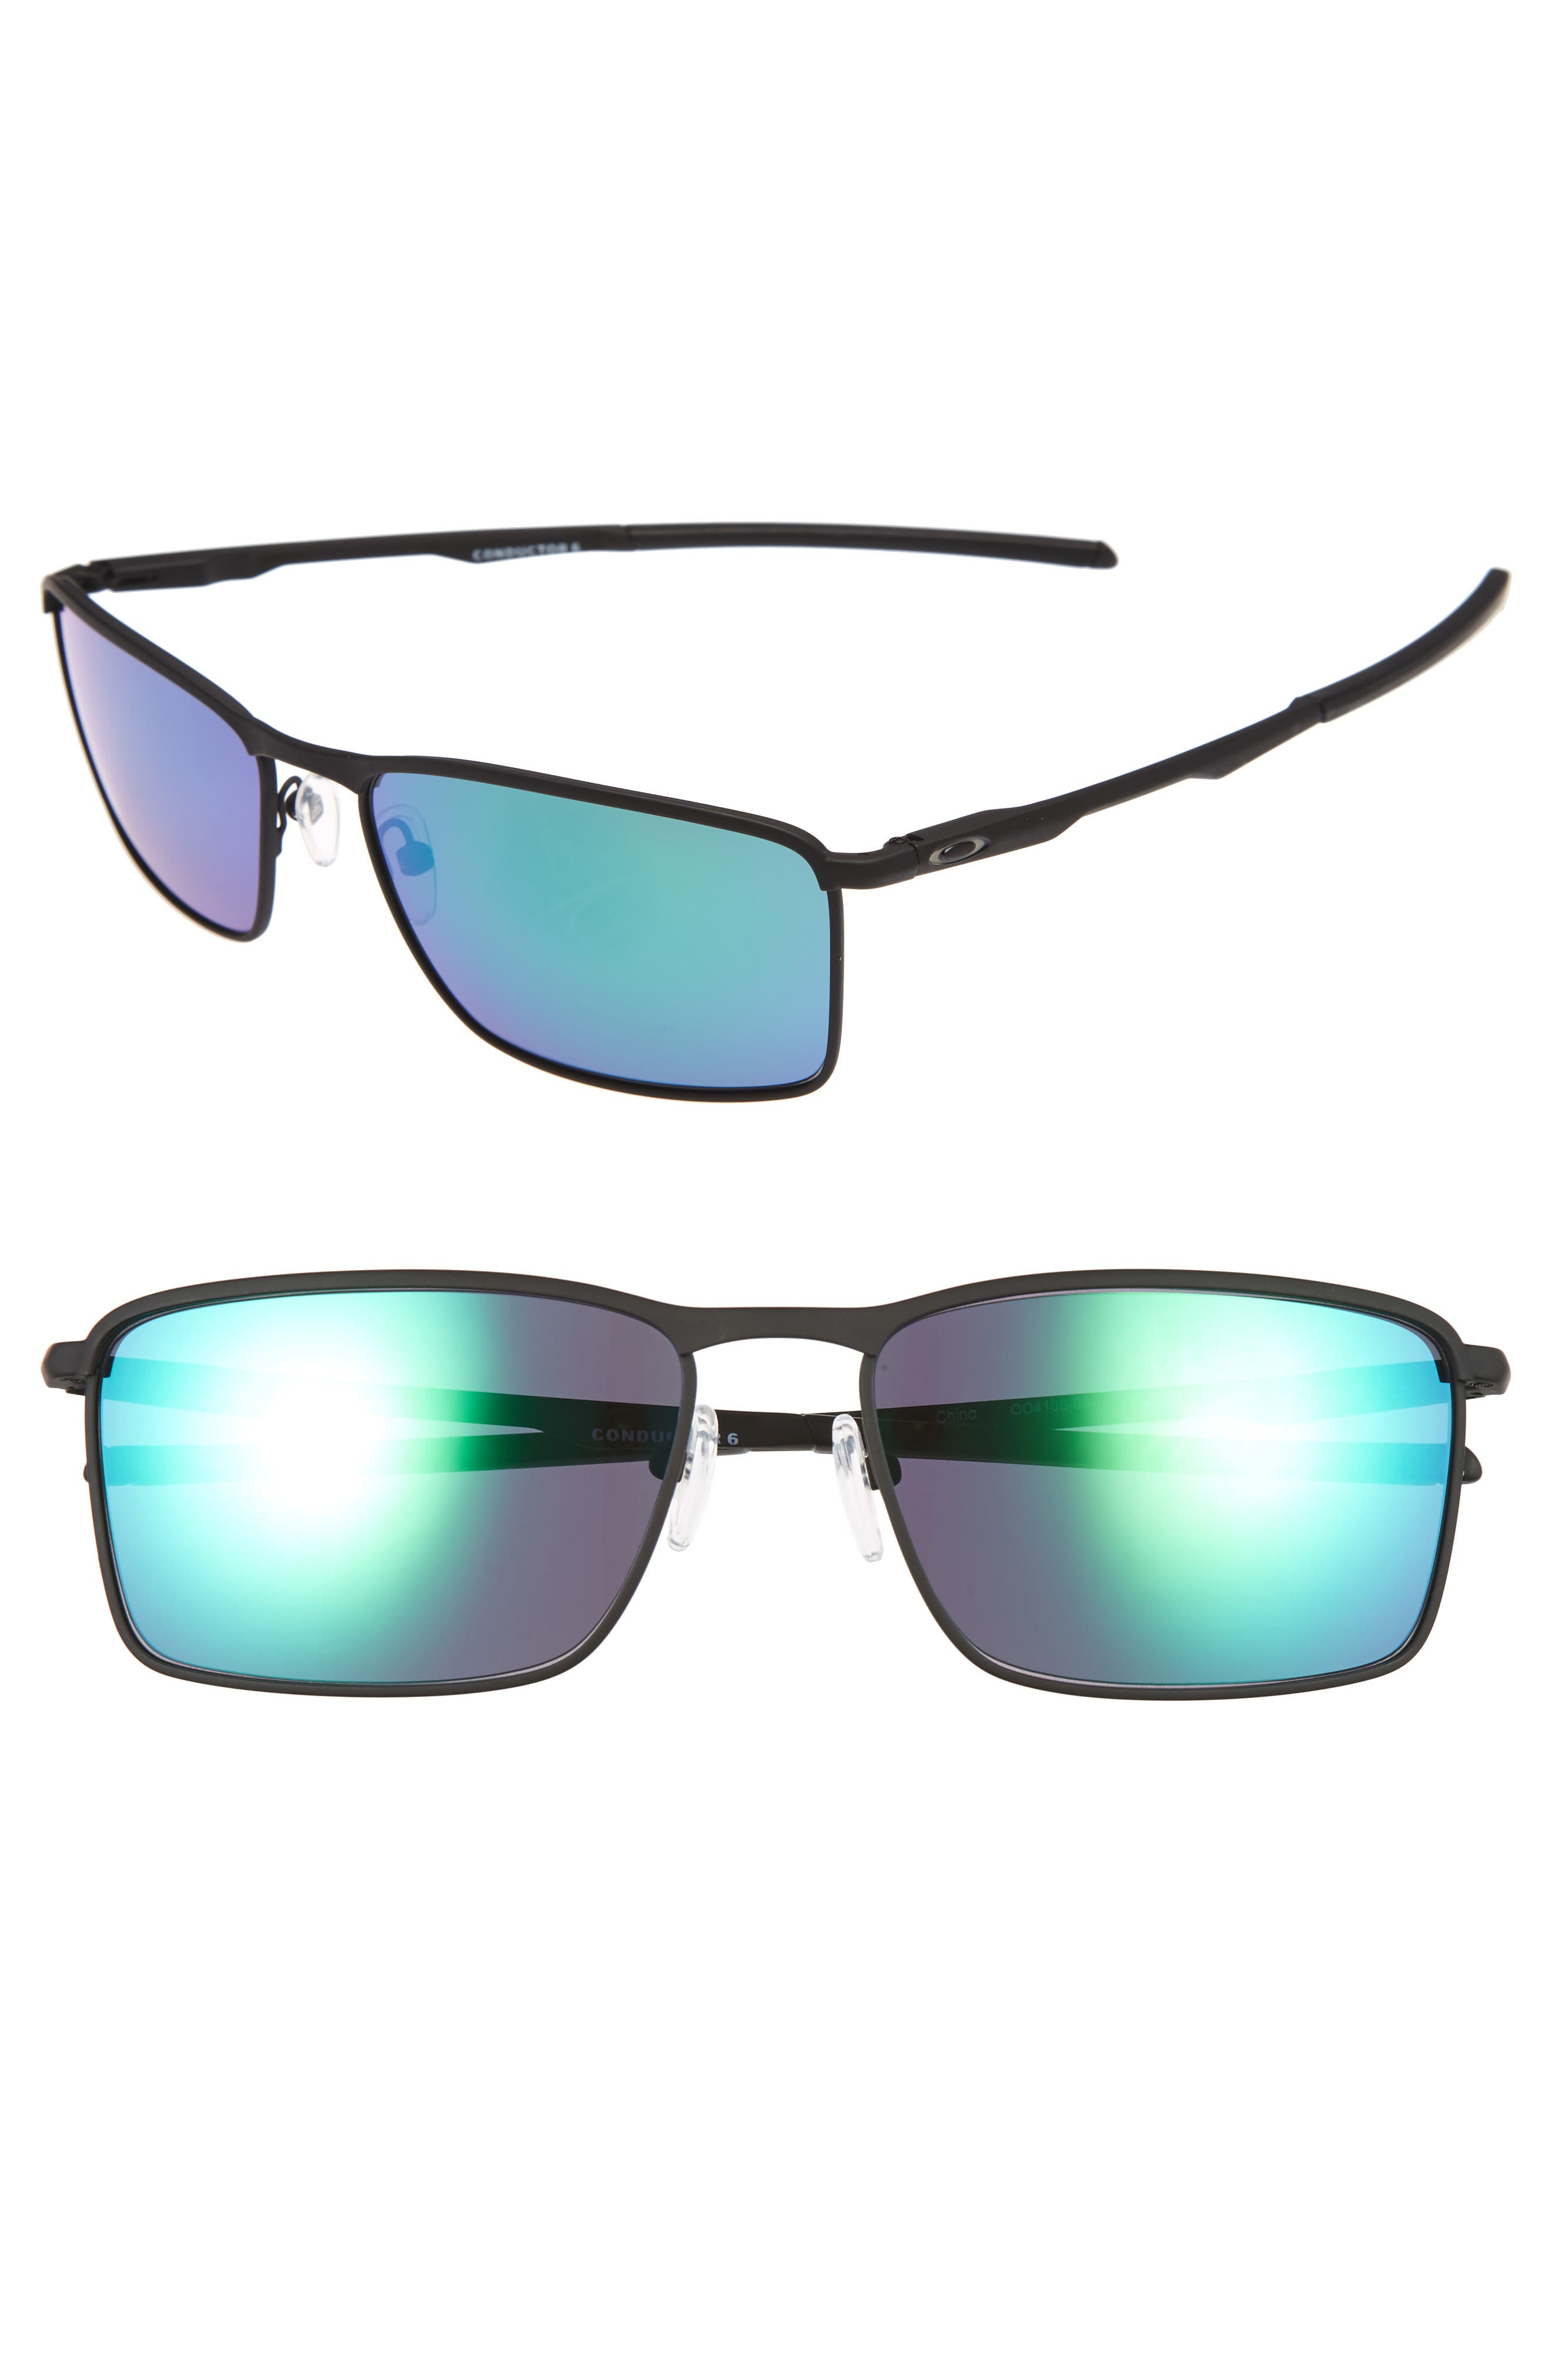 Conductor 6 58mm Polarized Sunglasses,                             Main thumbnail 1, color,                             Black